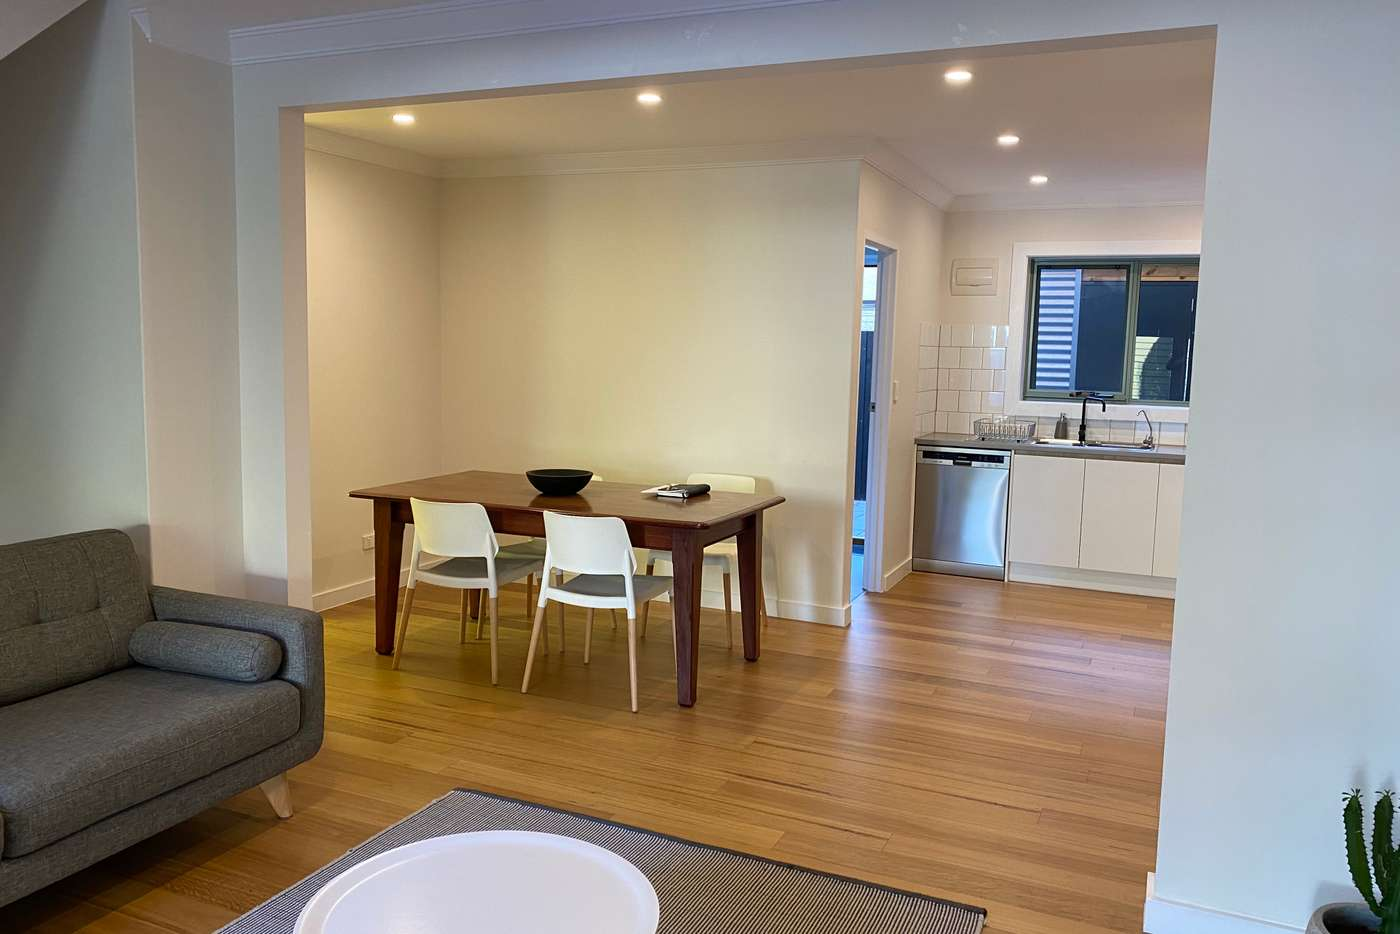 Seventh view of Homely apartment listing, 1/13 St Annes Terrace, Glenelg North SA 5045